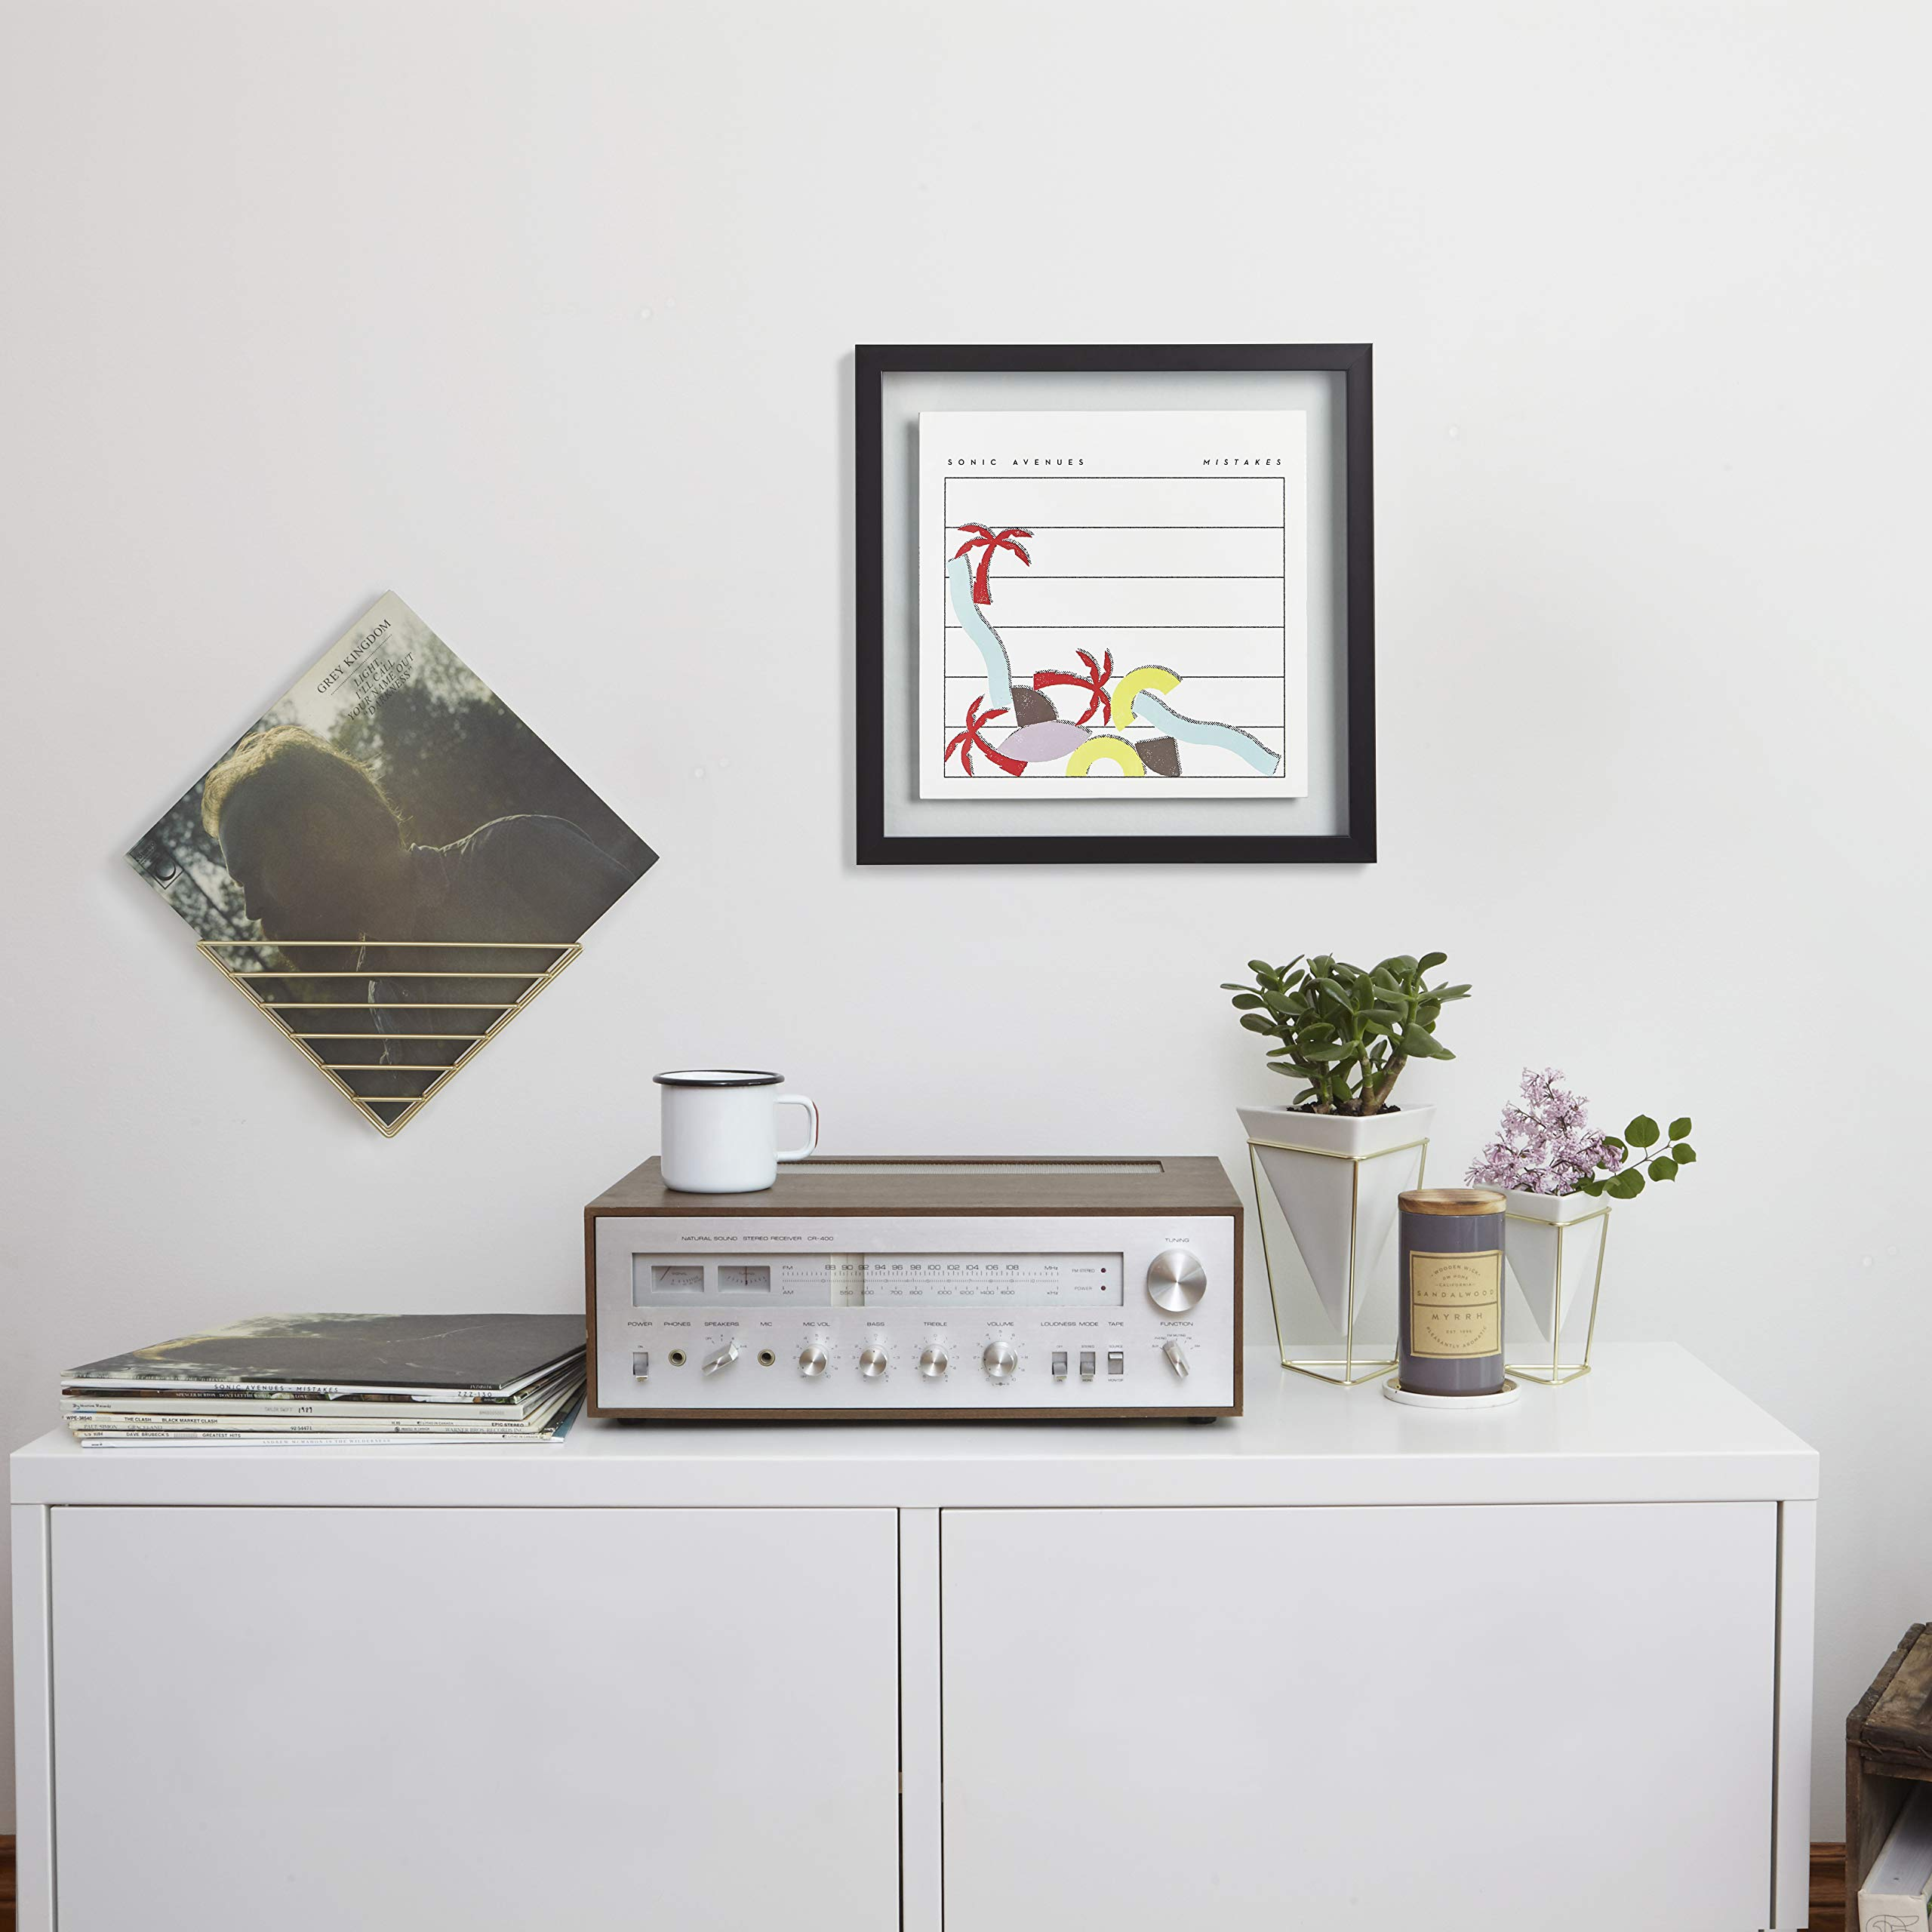 Umbra Record Album Frame 14-1/2x14-1/2-Inch, Modern Picture Frame Designed to Display a Floating 12-Inch by 12-Inch Album Cover by Umbra (Image #11)